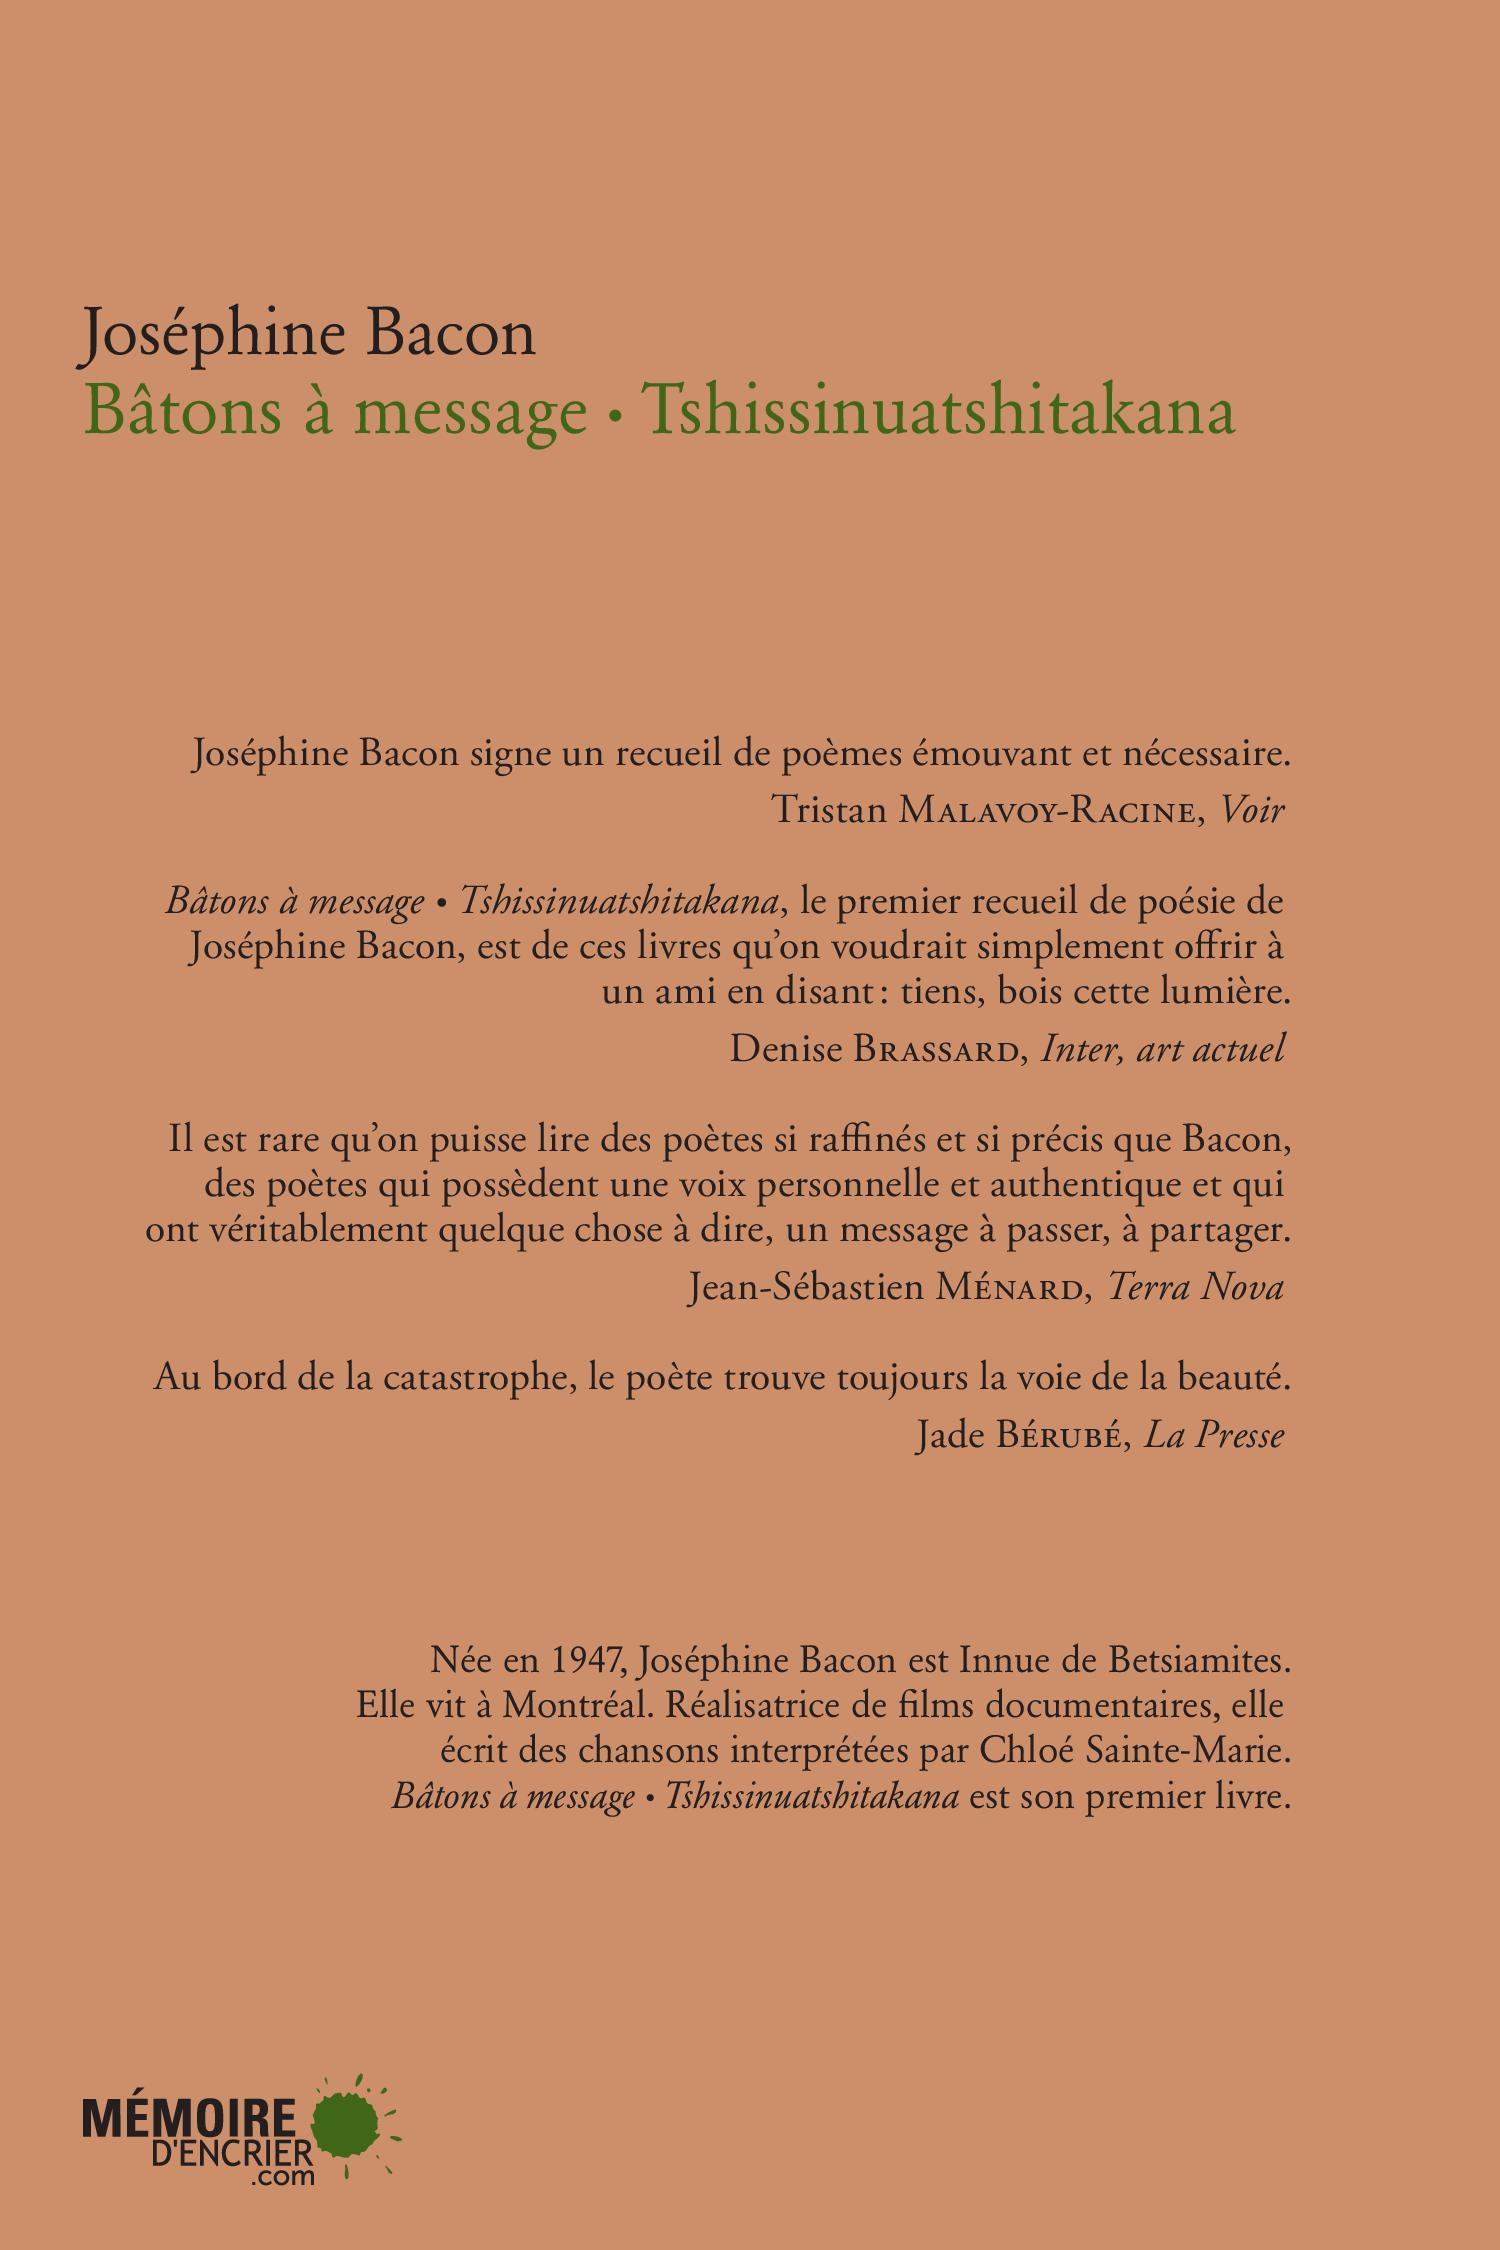 Bâtons à message Tshissinuatshitakana - Joséphine Bacon revers